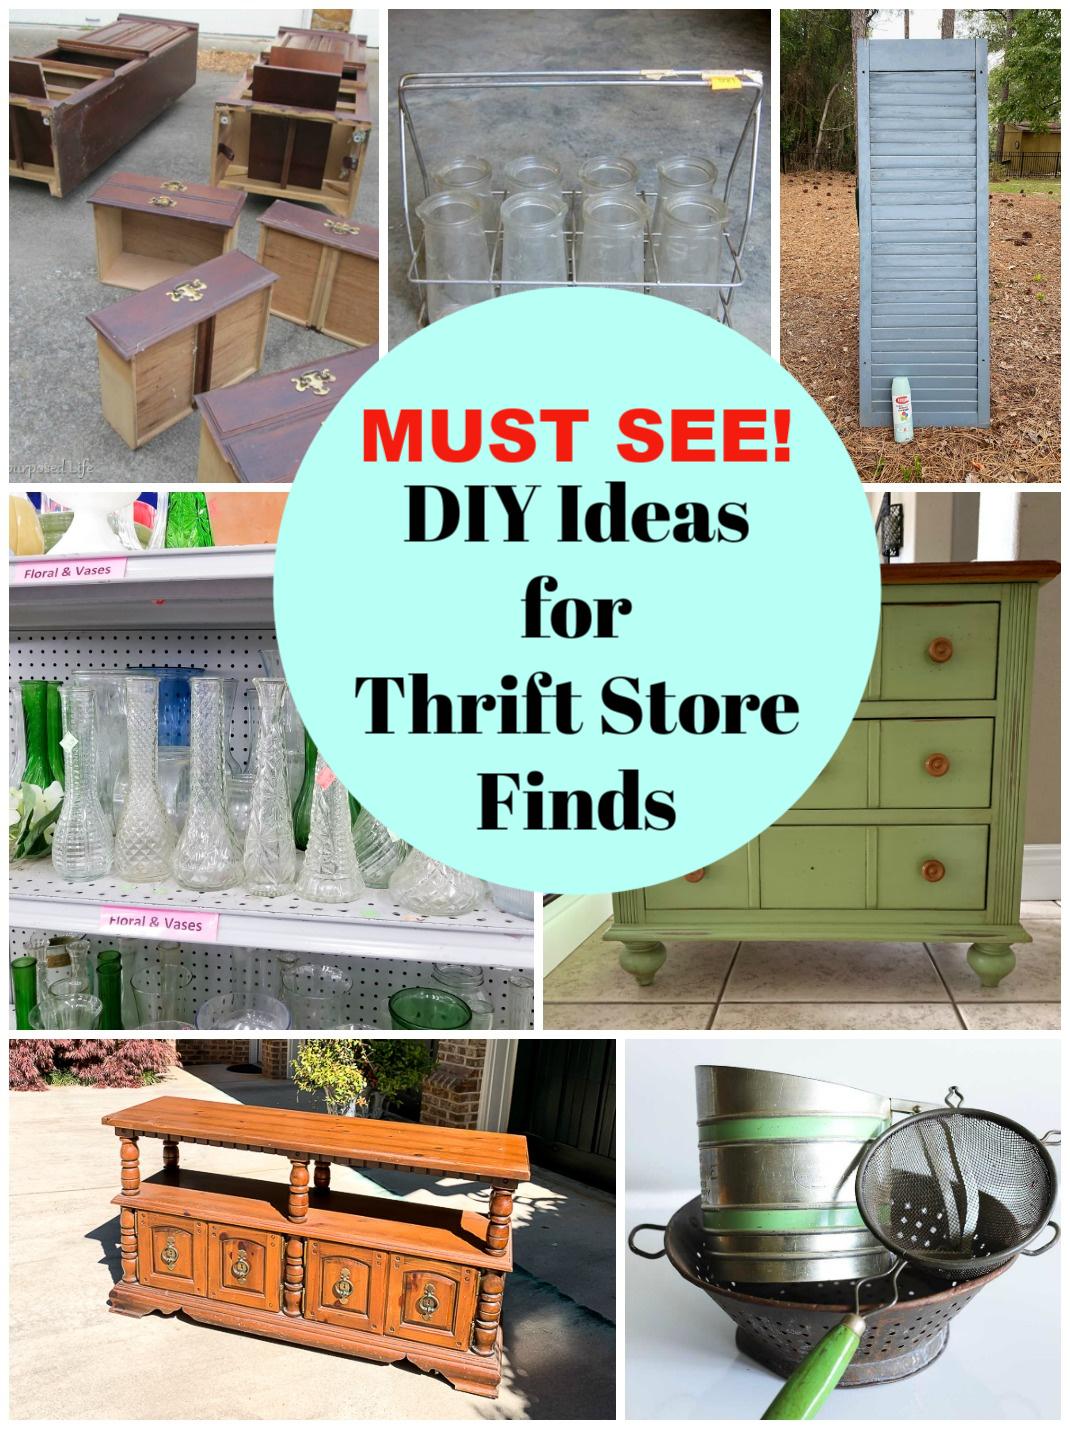 Thrift store ideas to DIY